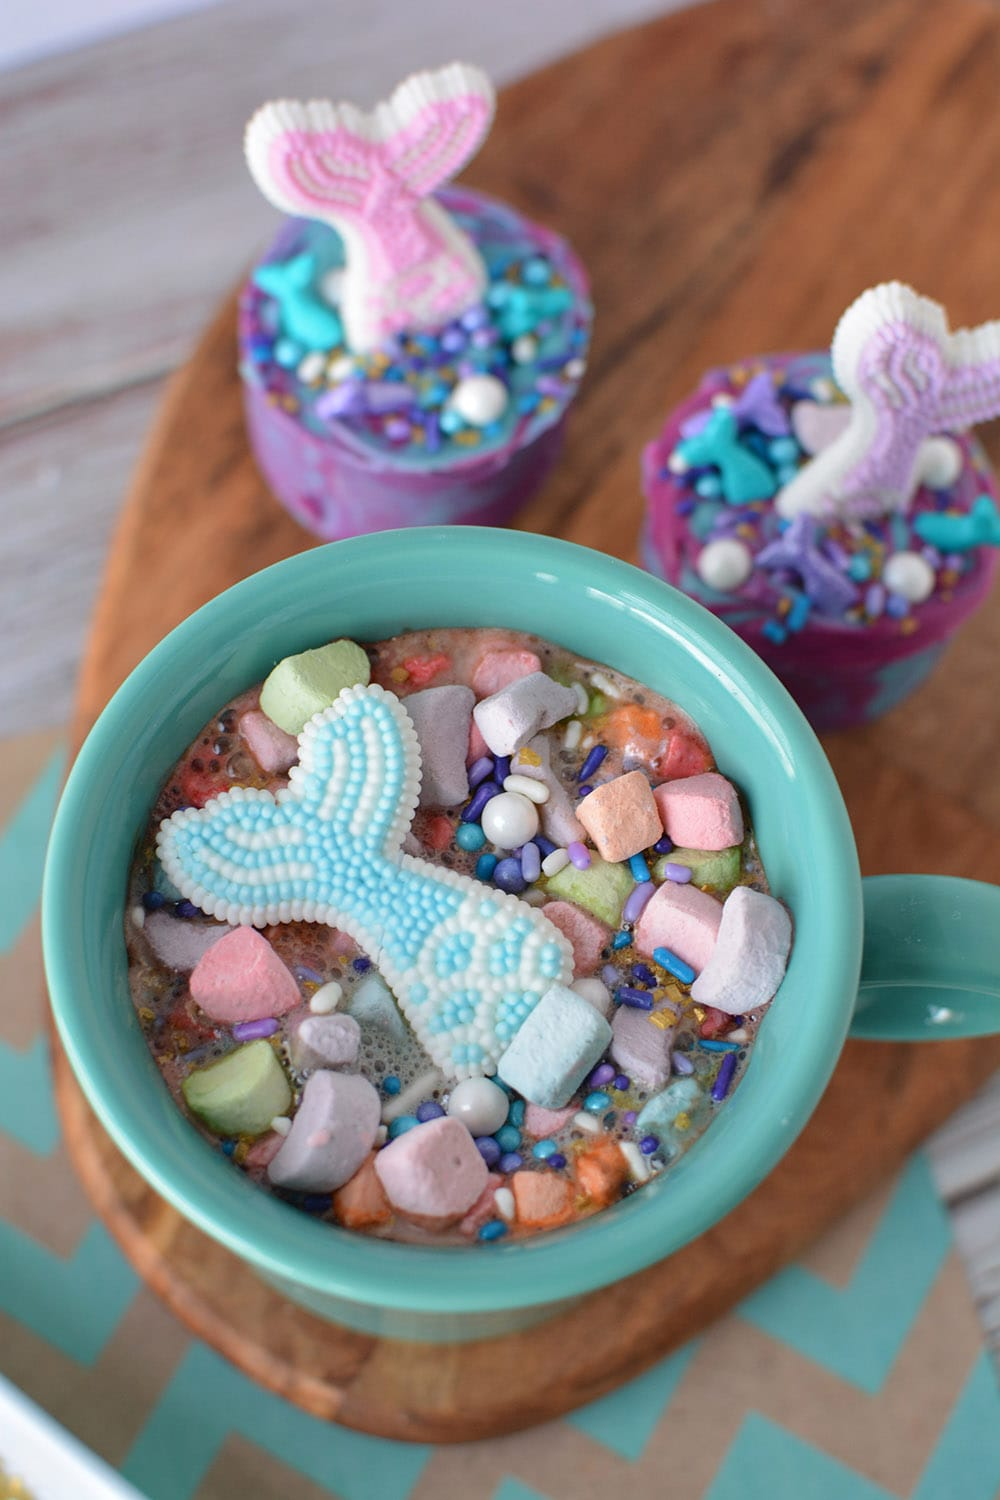 Mermaid tail floating in a mug of hot cocoa.